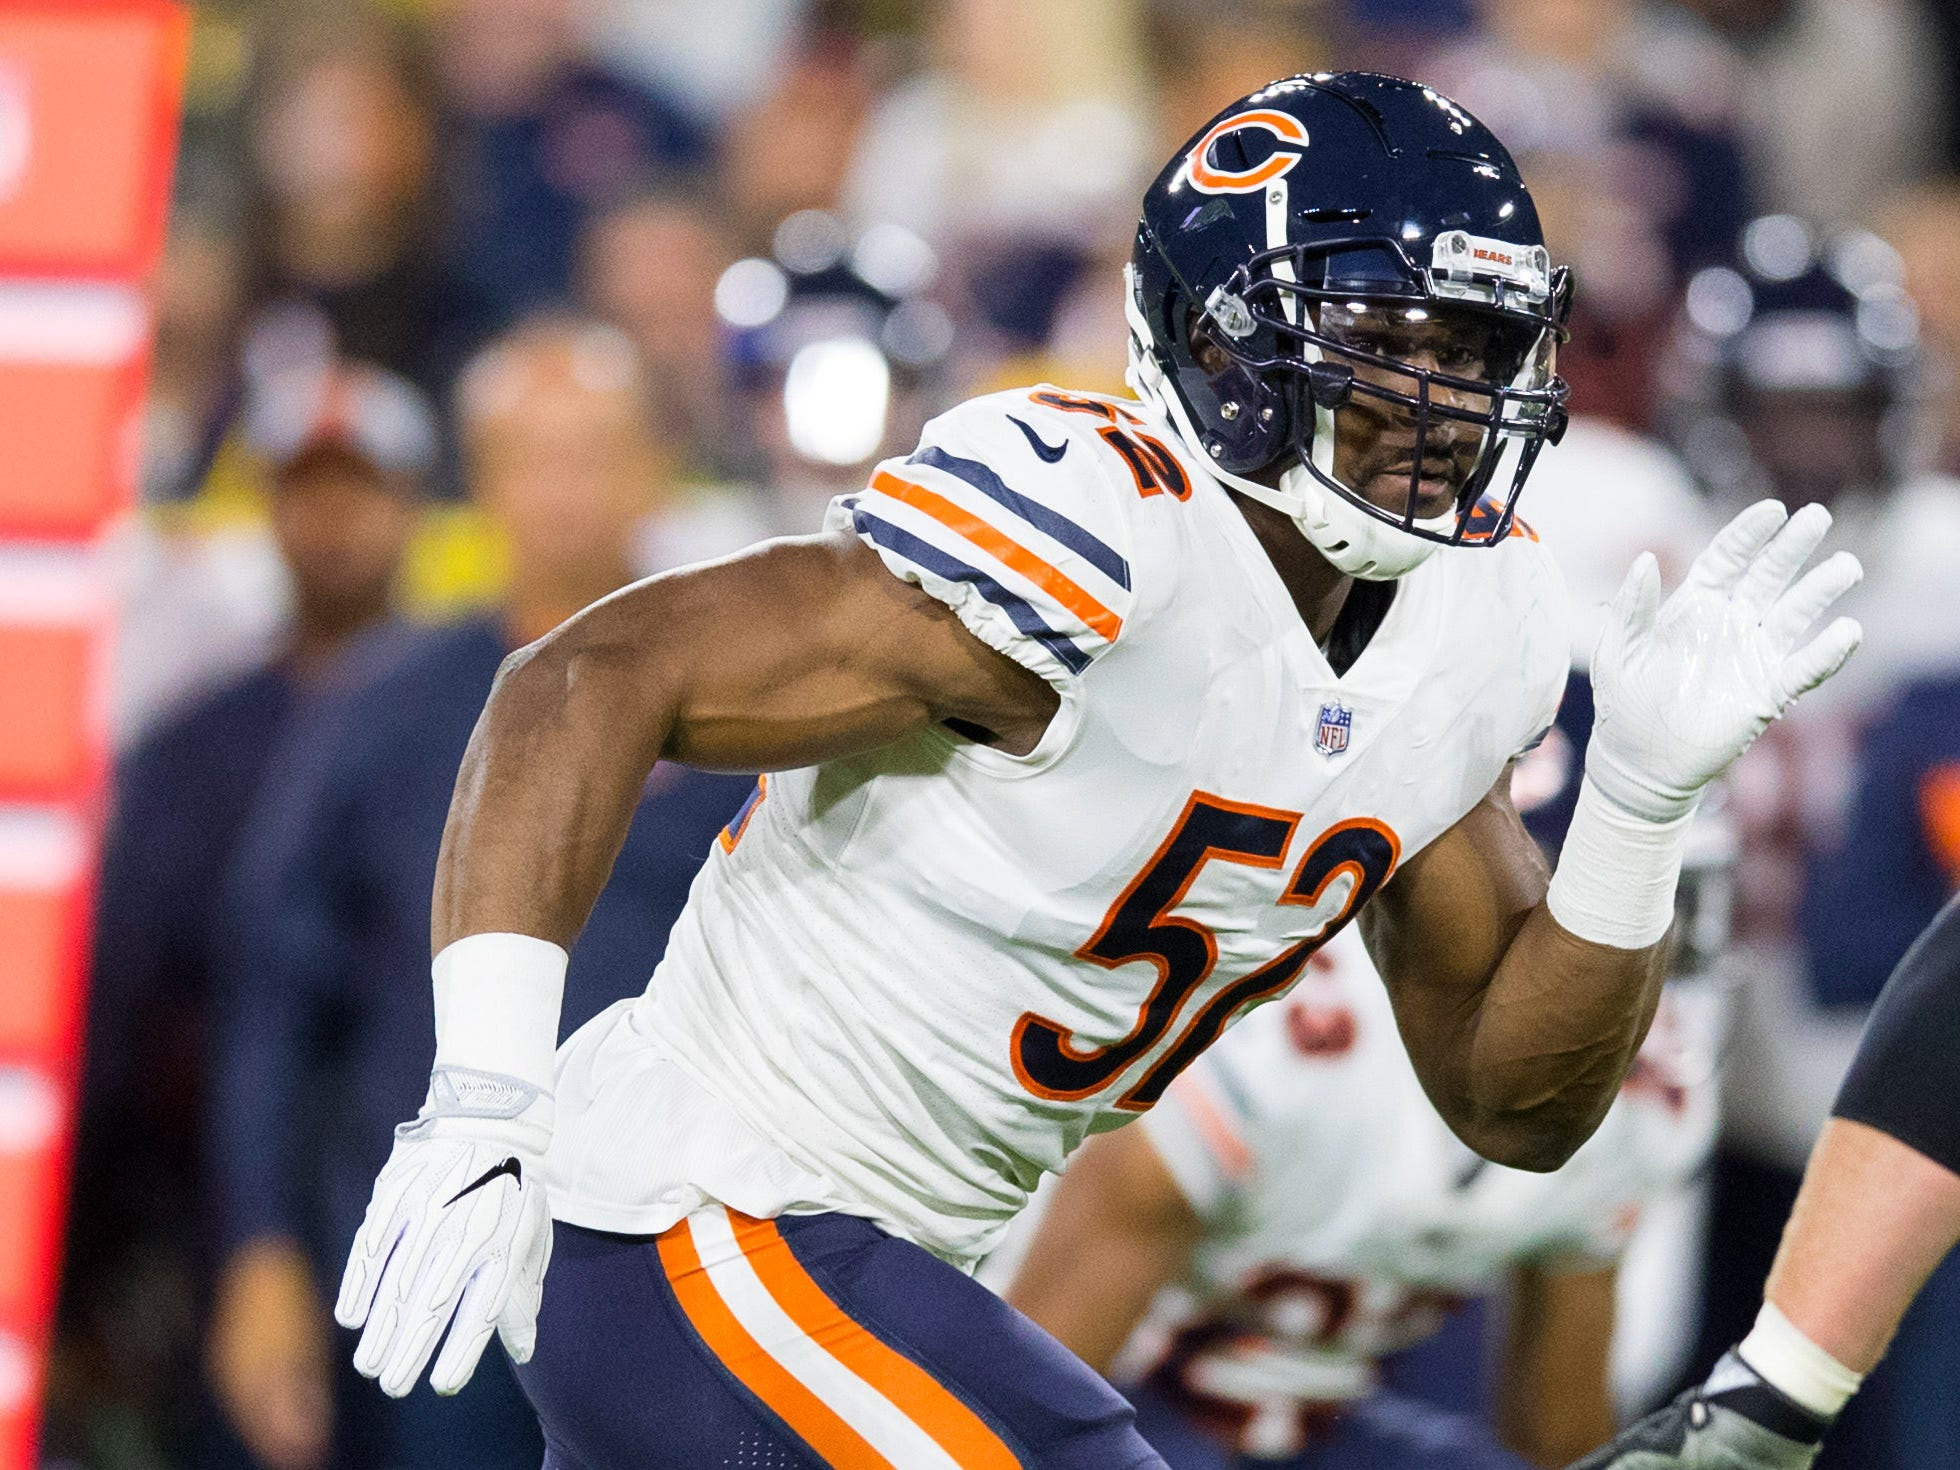 OLB - Khalil Mack, Chicago Bears